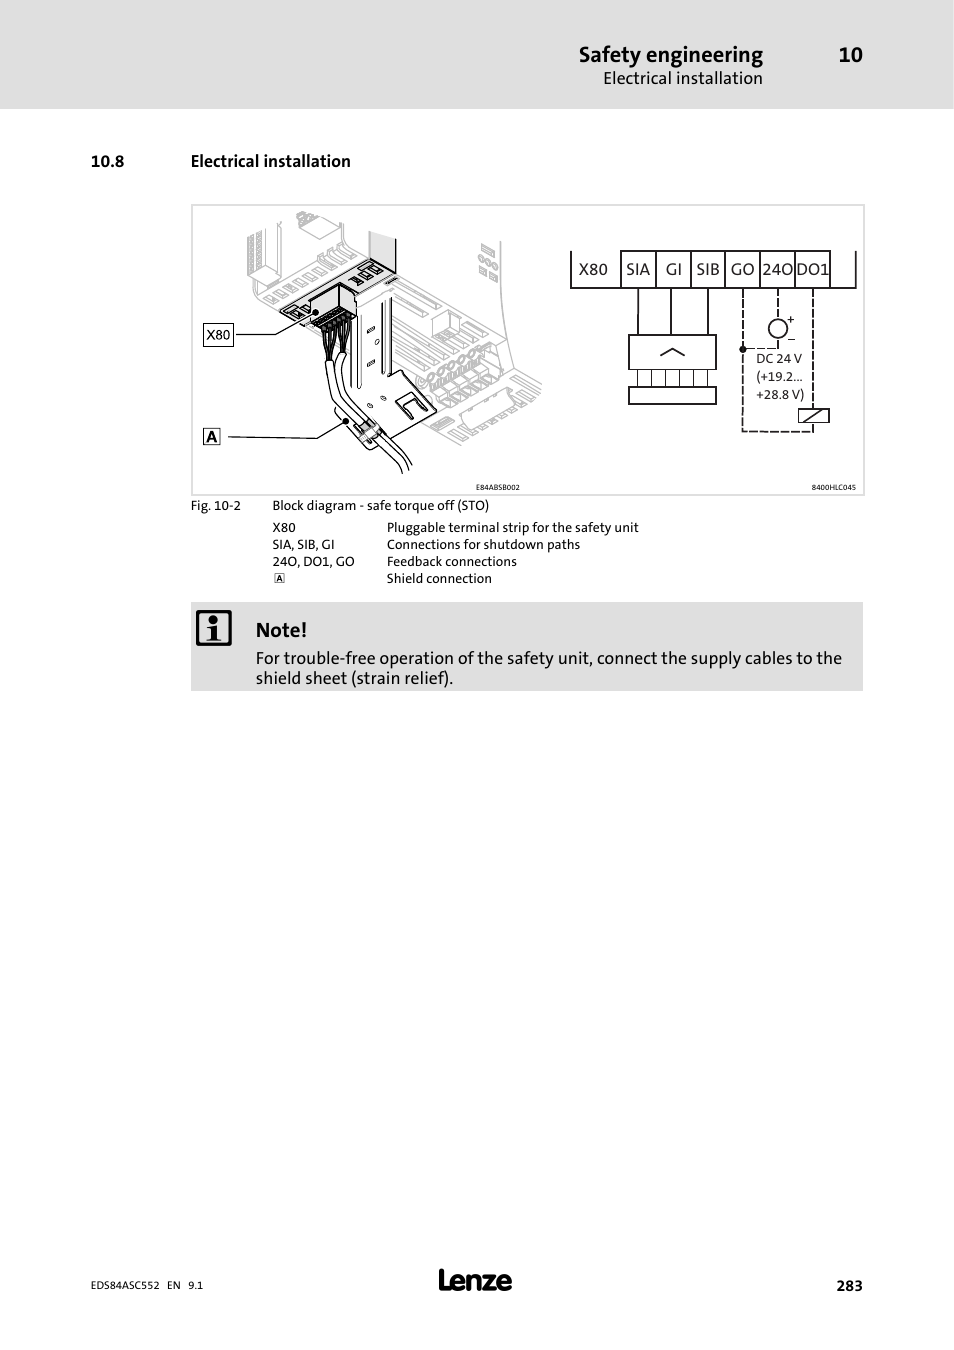 Lenze Wiring Diagram Vfd Library8 Electrical Installation Safety Engineering 8400 User Manual Page 283